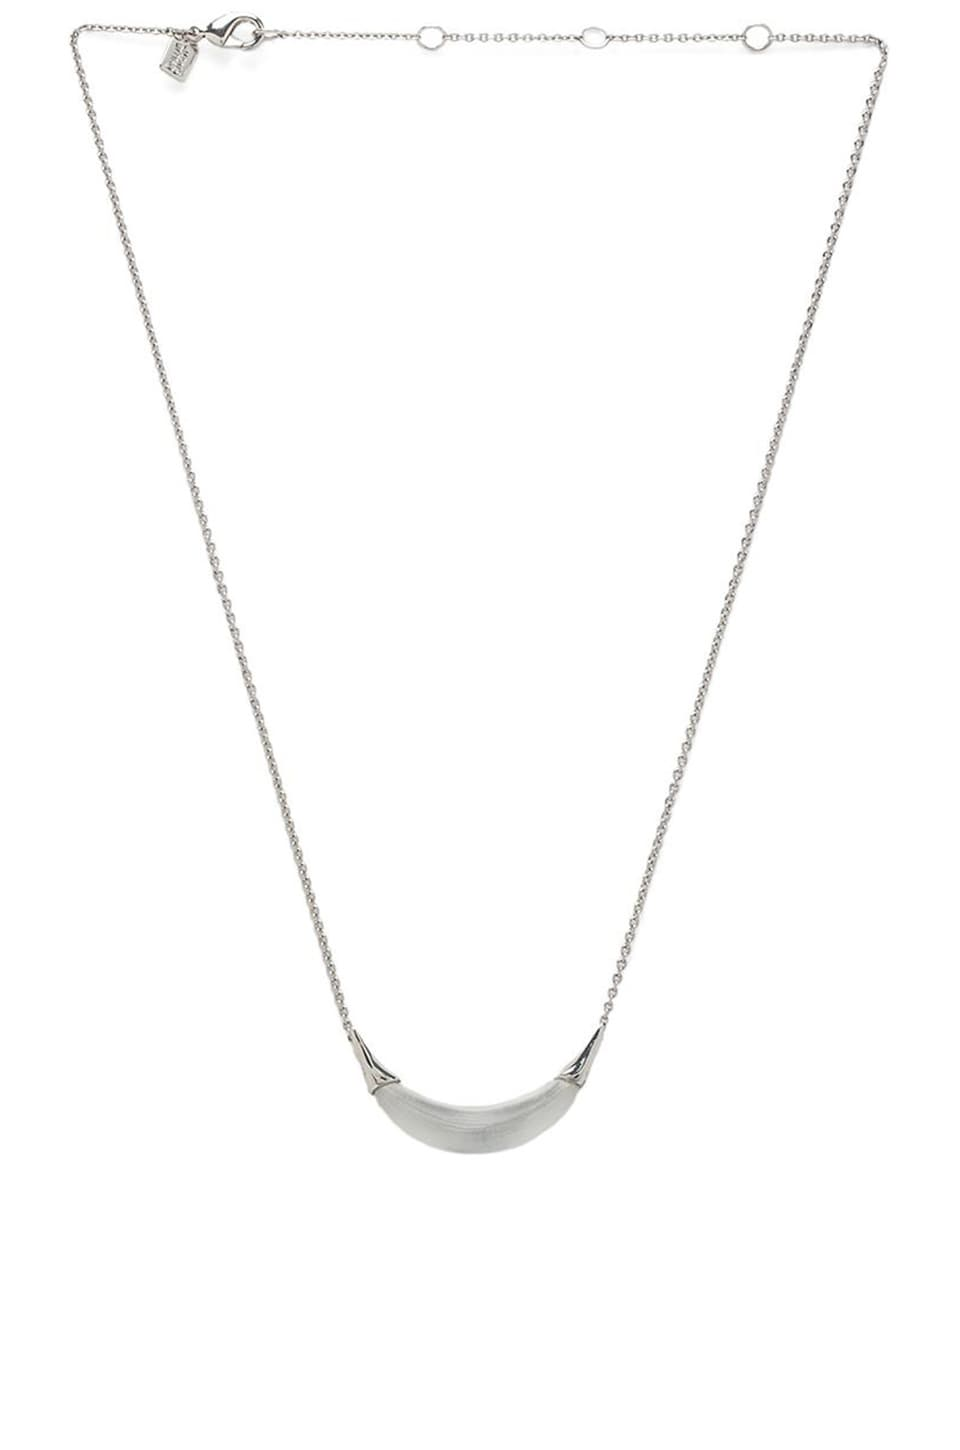 Alexis Bittar Capped Crescent Pendant Necklace in Silver